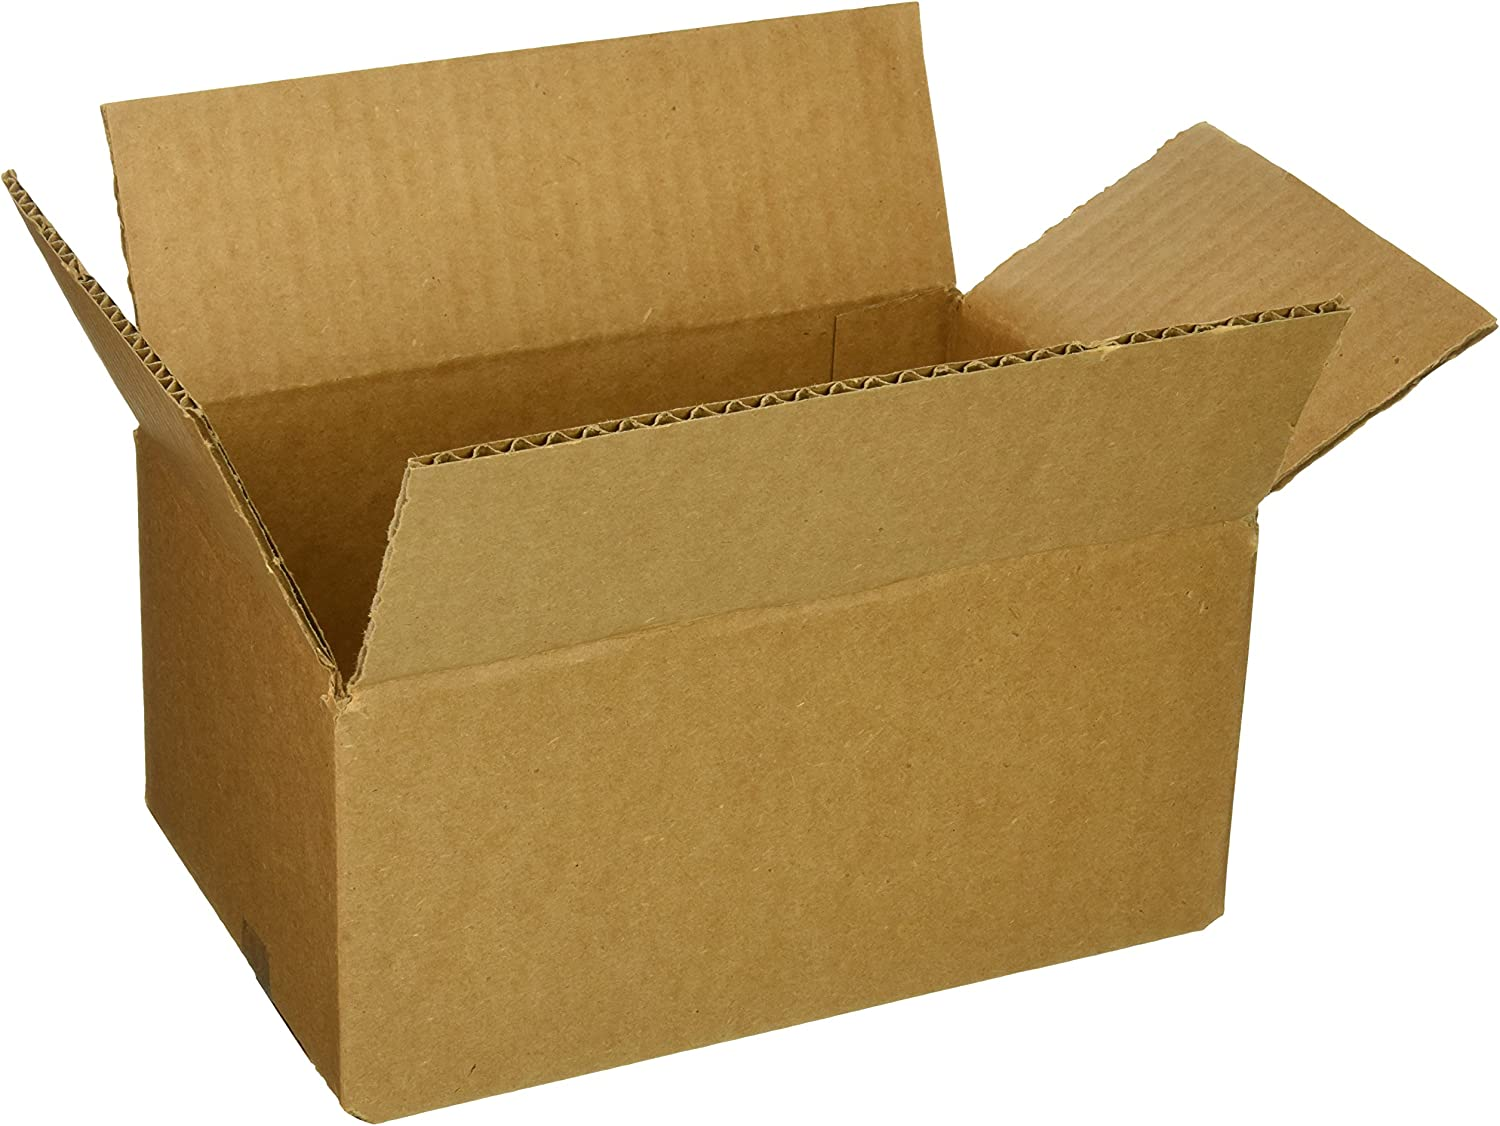 The Packaging Wholesalers 9 x 6 x 4 Inches Shipping Boxes, 25-Count (BS090604)